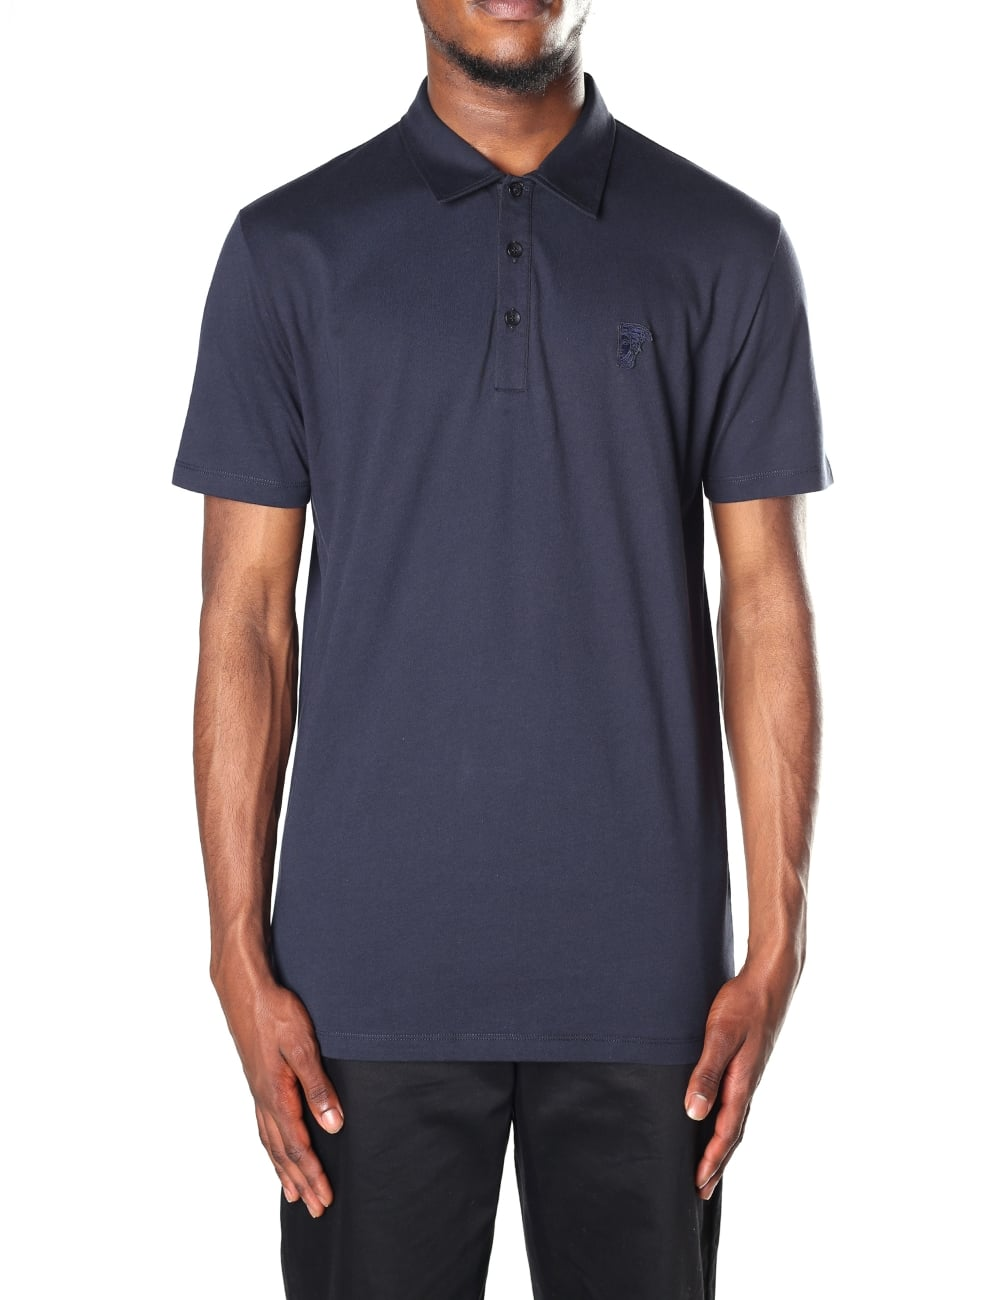 Versace Collection Men s Short Sleeve Polo Top c859bdaa217c